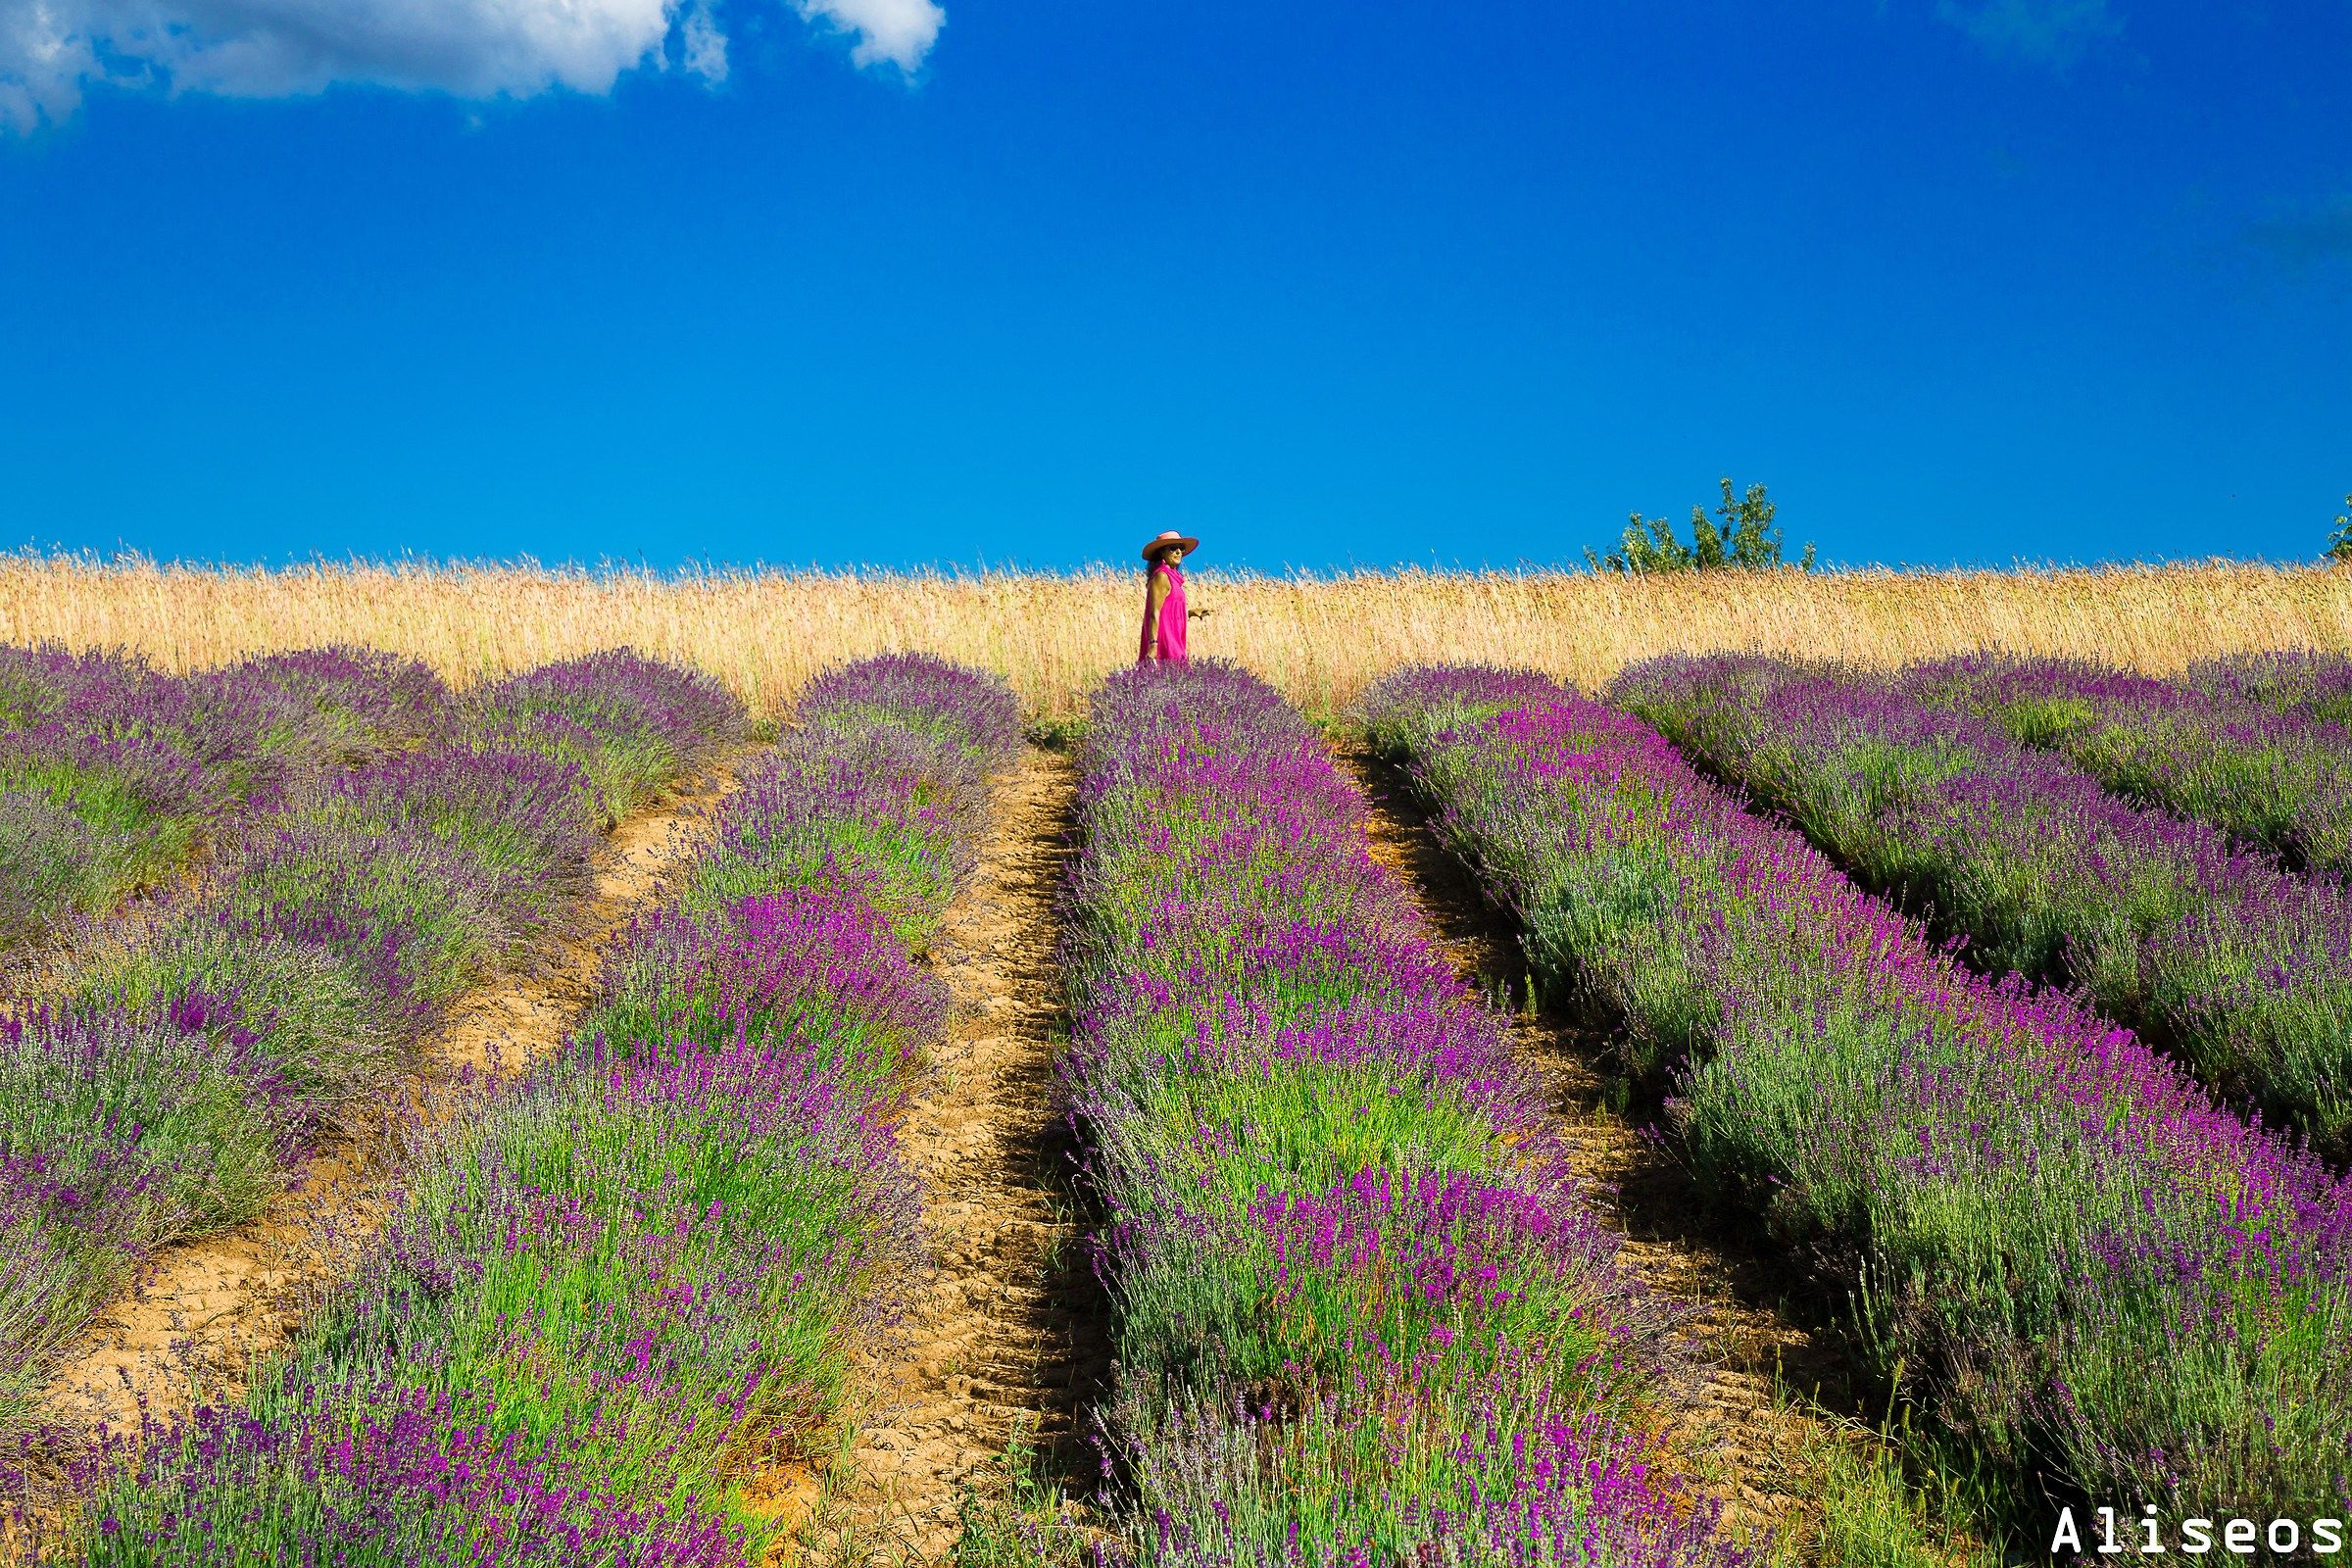 Between Lavender and wheat...